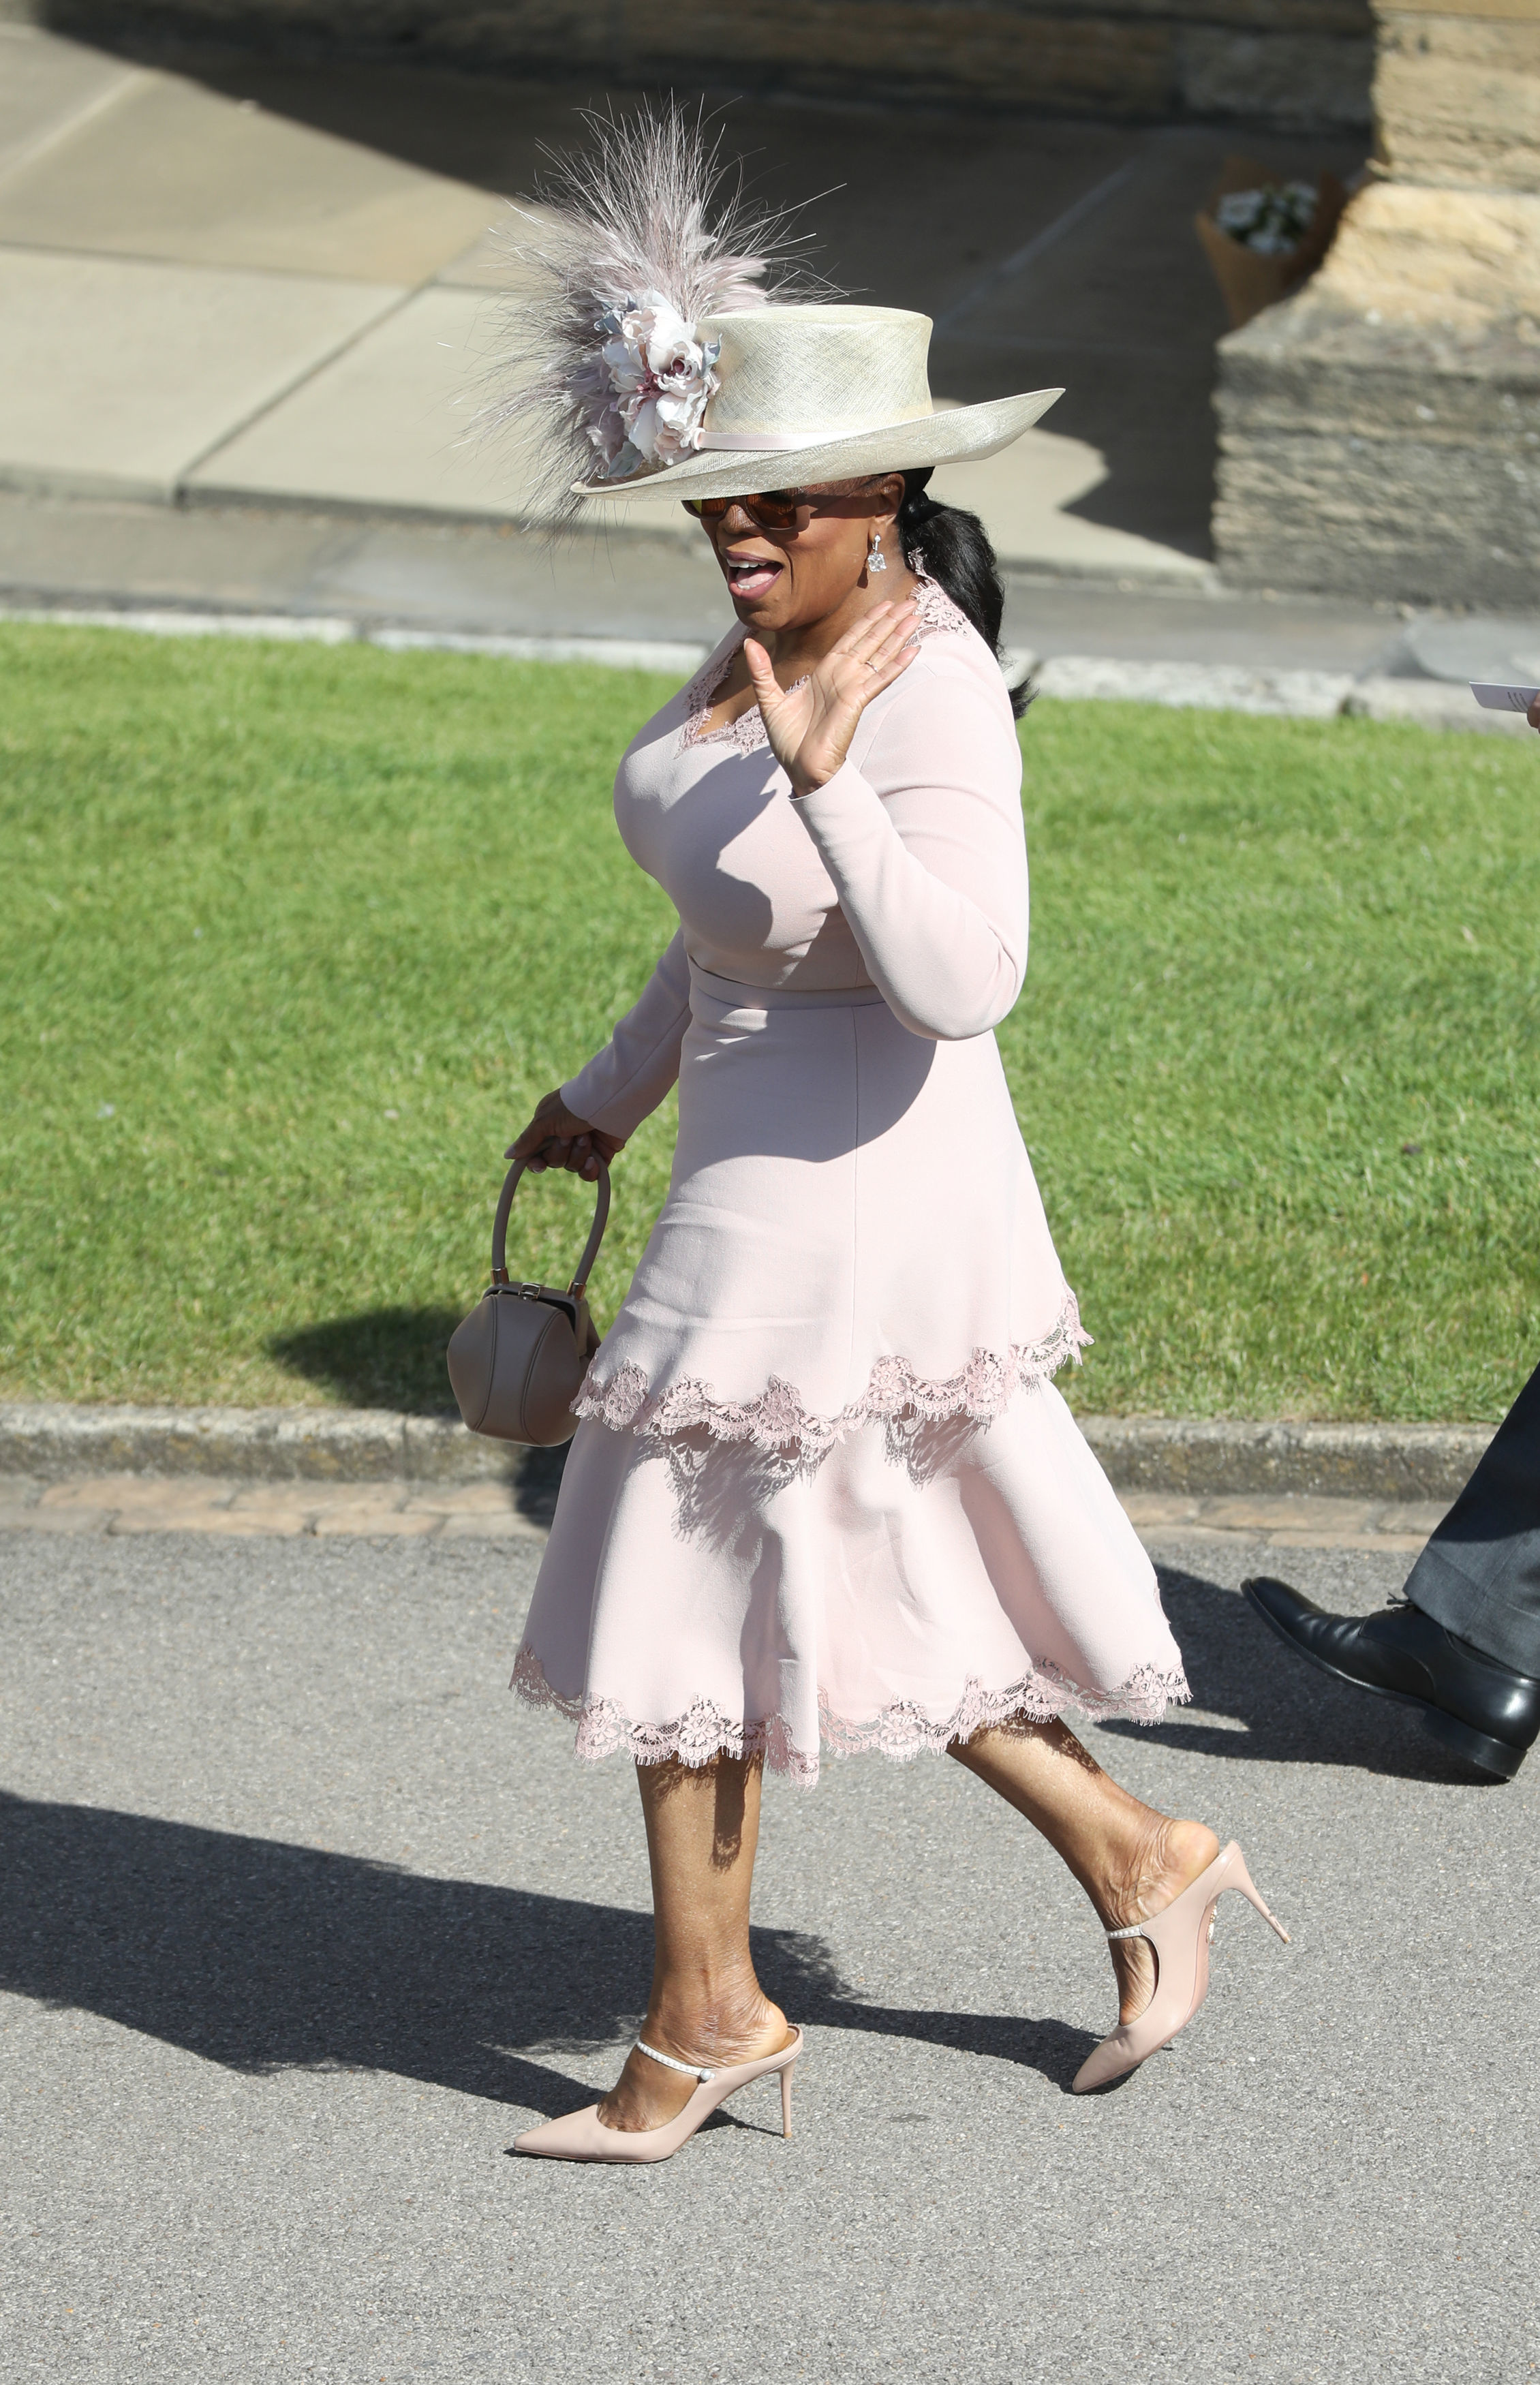 Oprah Winfrey arrives at Windsor Castle ahead of the wedding of Prince Harry and Meghan Markle. (Photo by Andrew Milligan/PA Images via Getty Images)